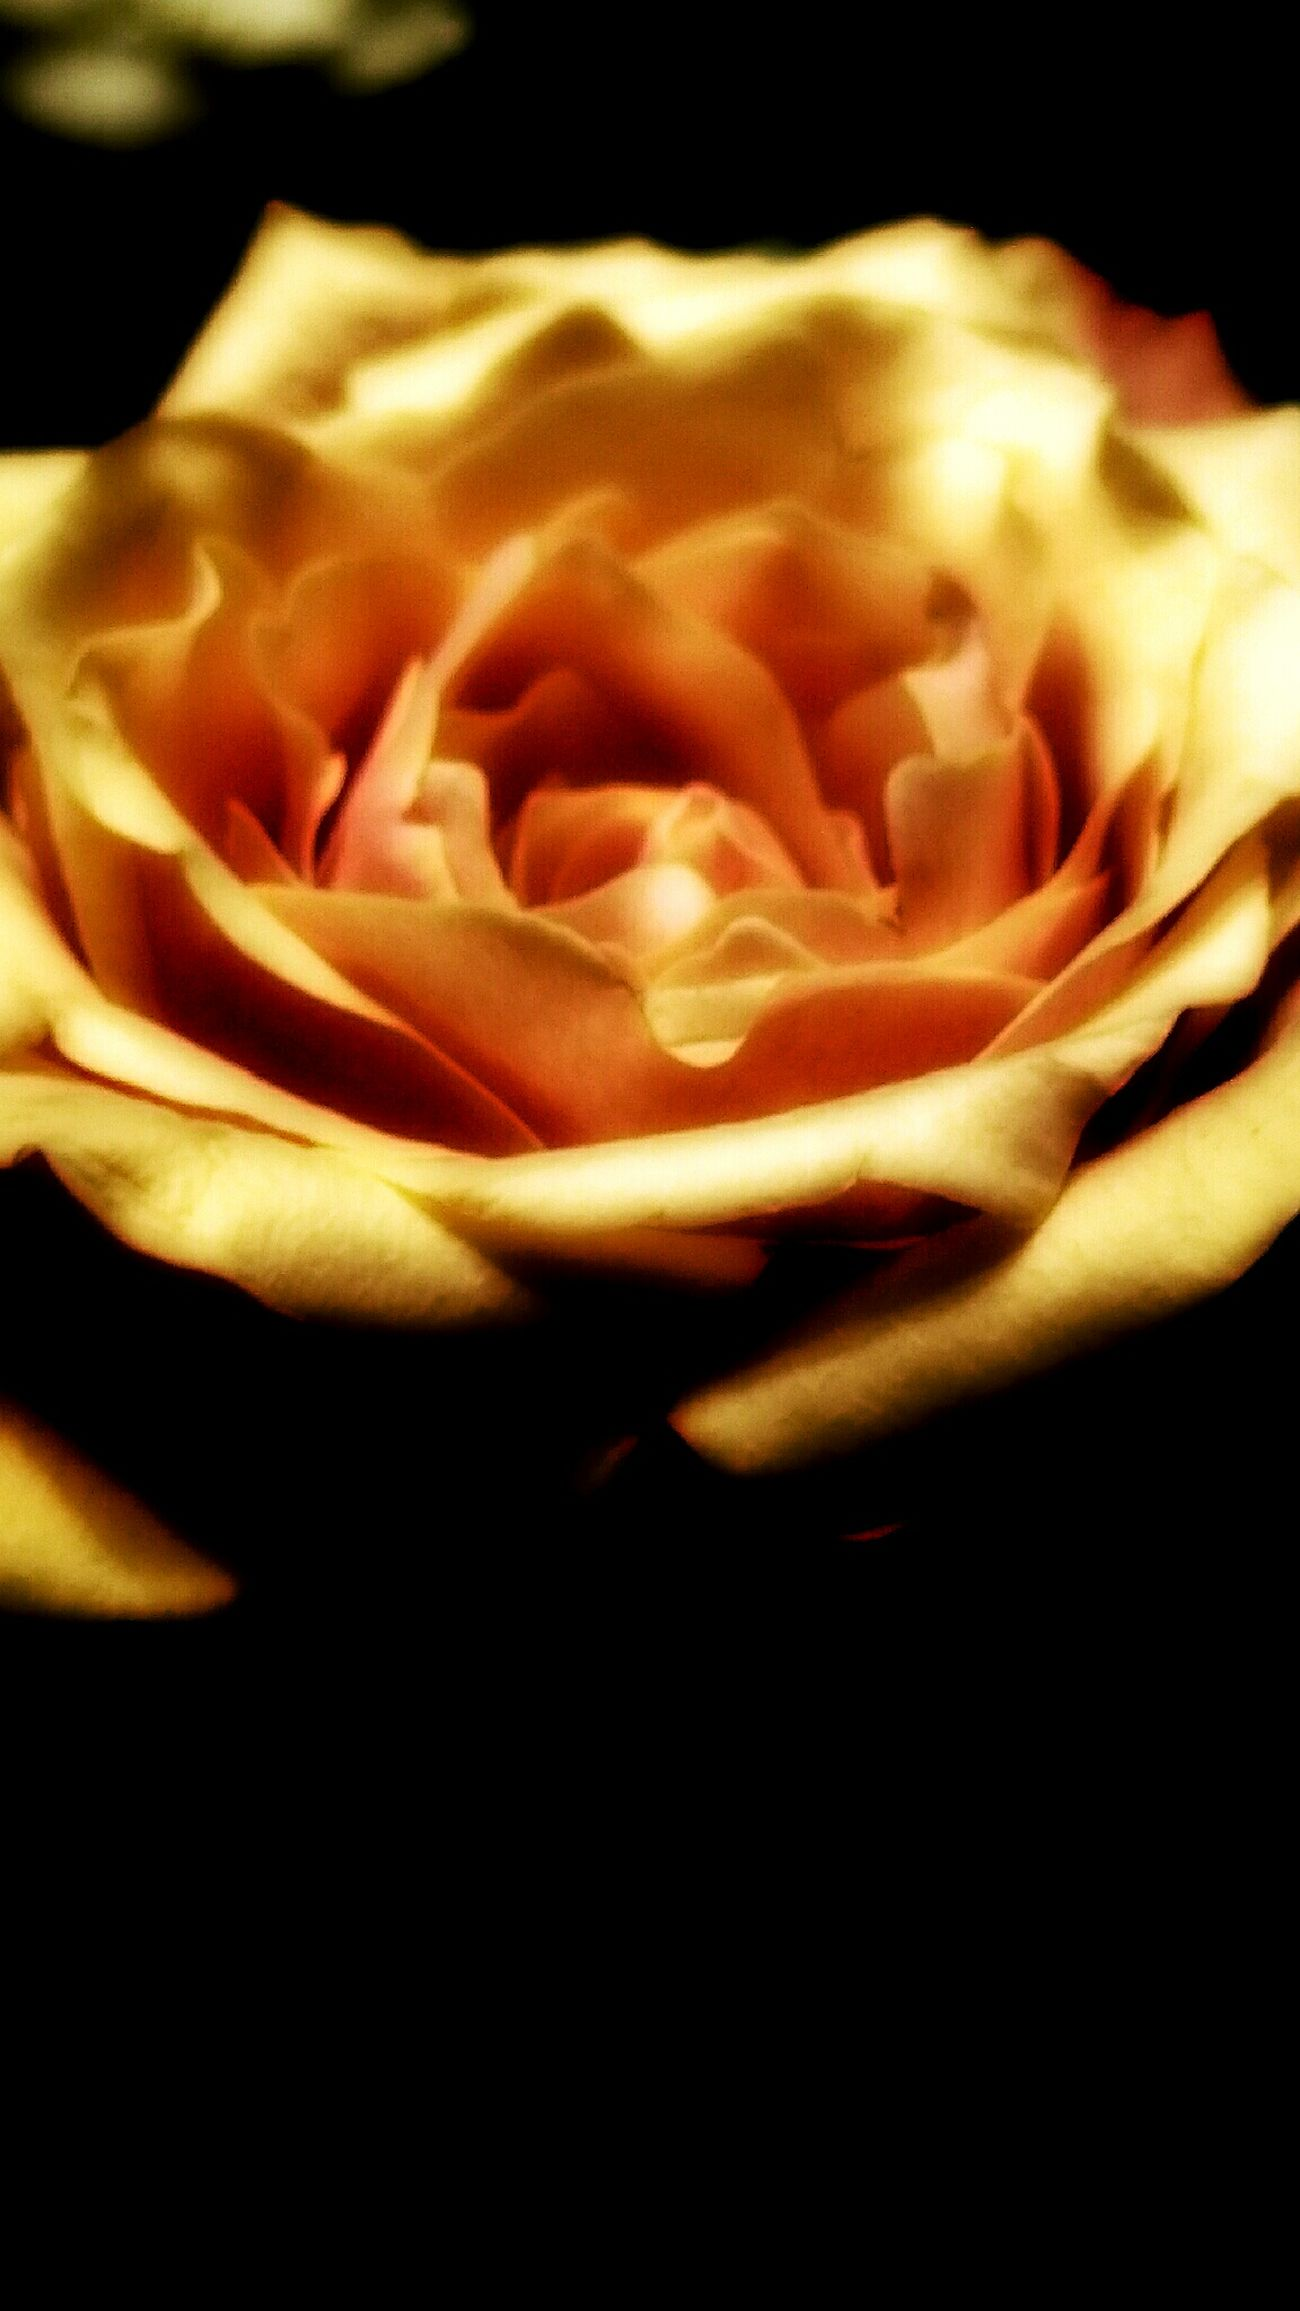 Have a sweet romantic night... Roses CreativePhotographer Showing Why I Could Be An Open Editor EyeEm Best Shots - Flowers Macro Macro_collection The Flowers Series Eyem Best Shots Eye Em Best Shots EE_Daily: Orange Tuesday